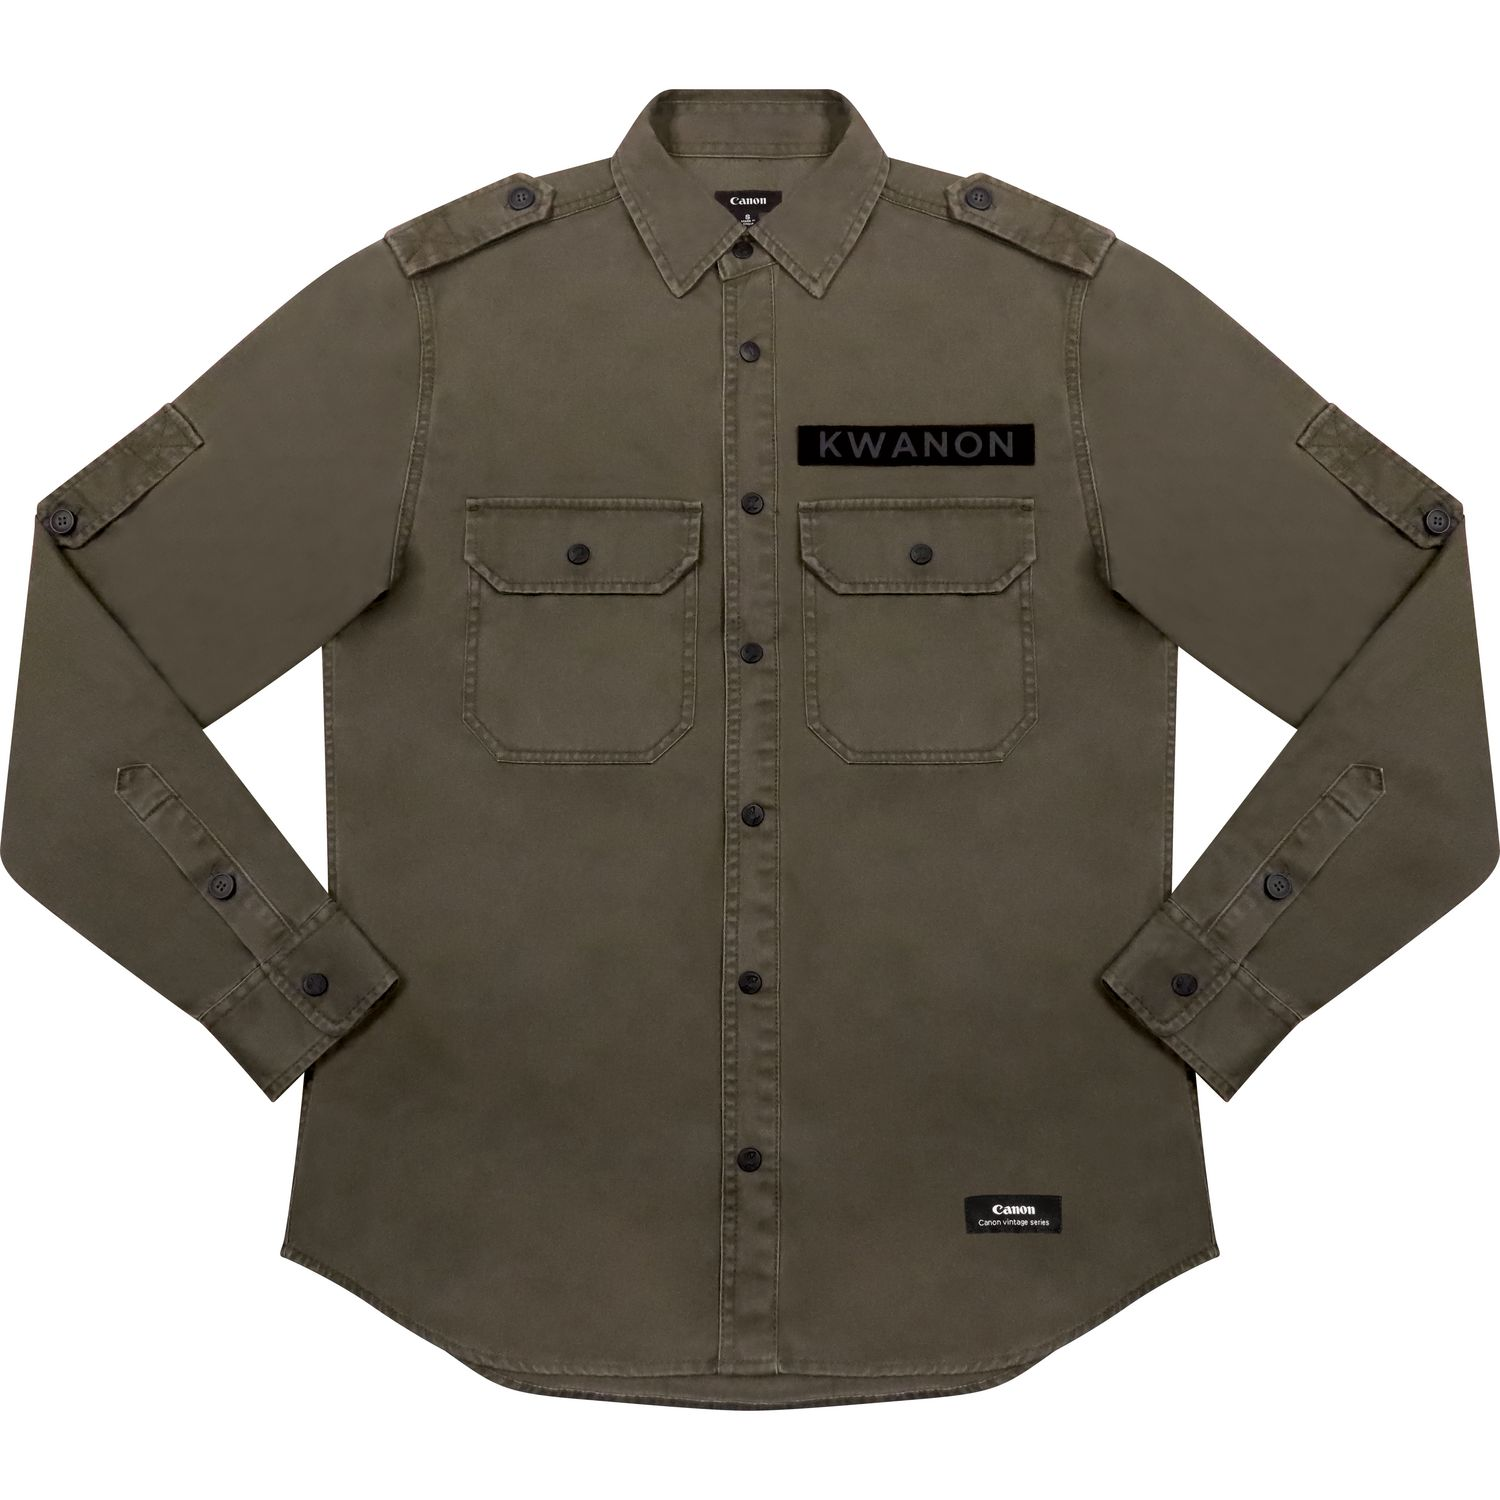 5076c189855 Magnify image. Men s overshirt with Canon vintage logo ...